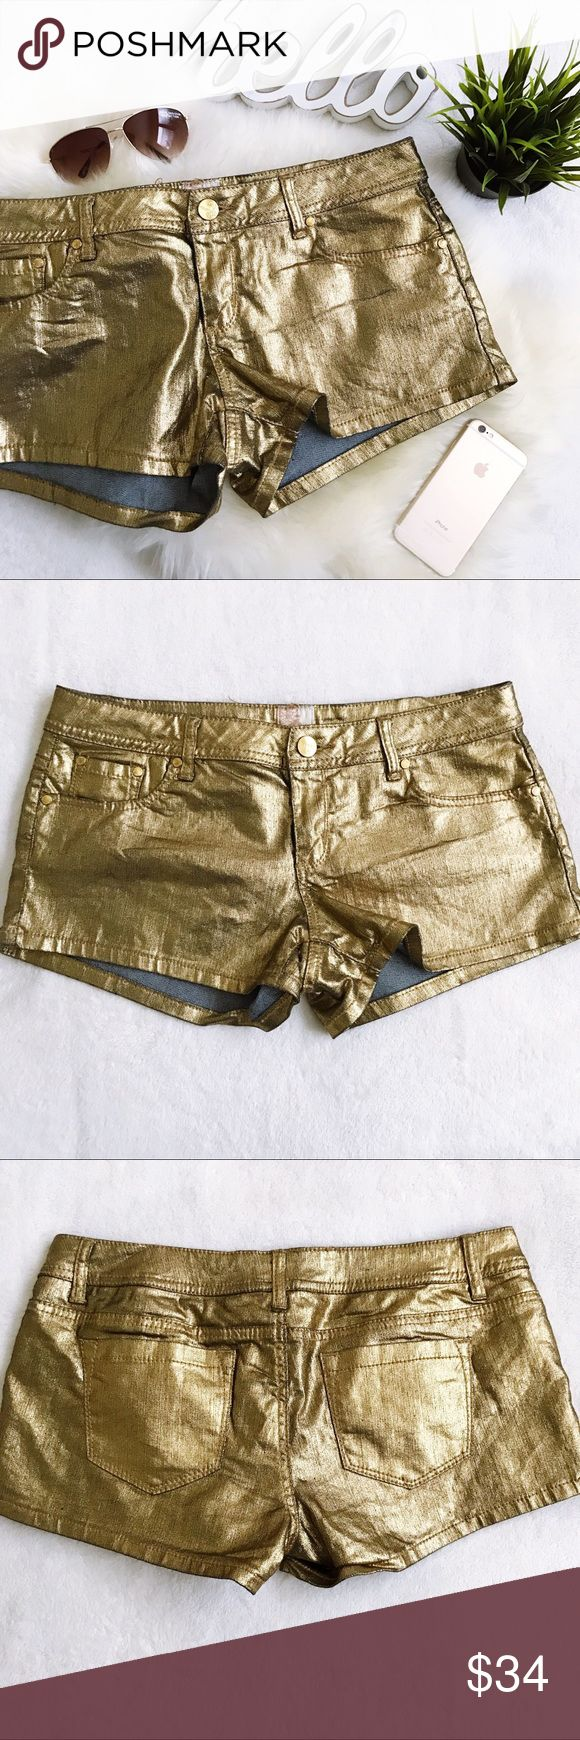 """ARDEN B Gold Coated Denim Short Shorts NWT New with tags, no flaws Metallic gold coated denim Wear now with tights and OTK boots Wear later with flats and a cute top Super fun and versatile   Waist 17.5"""" Hip 20"""" Rise 8.33"""" Inseam 2.75""""  Please review all photos thoroughly  Feel free to ask questions   📎Measurements are approximate  ✏️Save 15% on bundles of 3 or more 👍🏻Reasonable offers welcome! 🚫Sorry no trades ❤️ Arden B Shorts"""